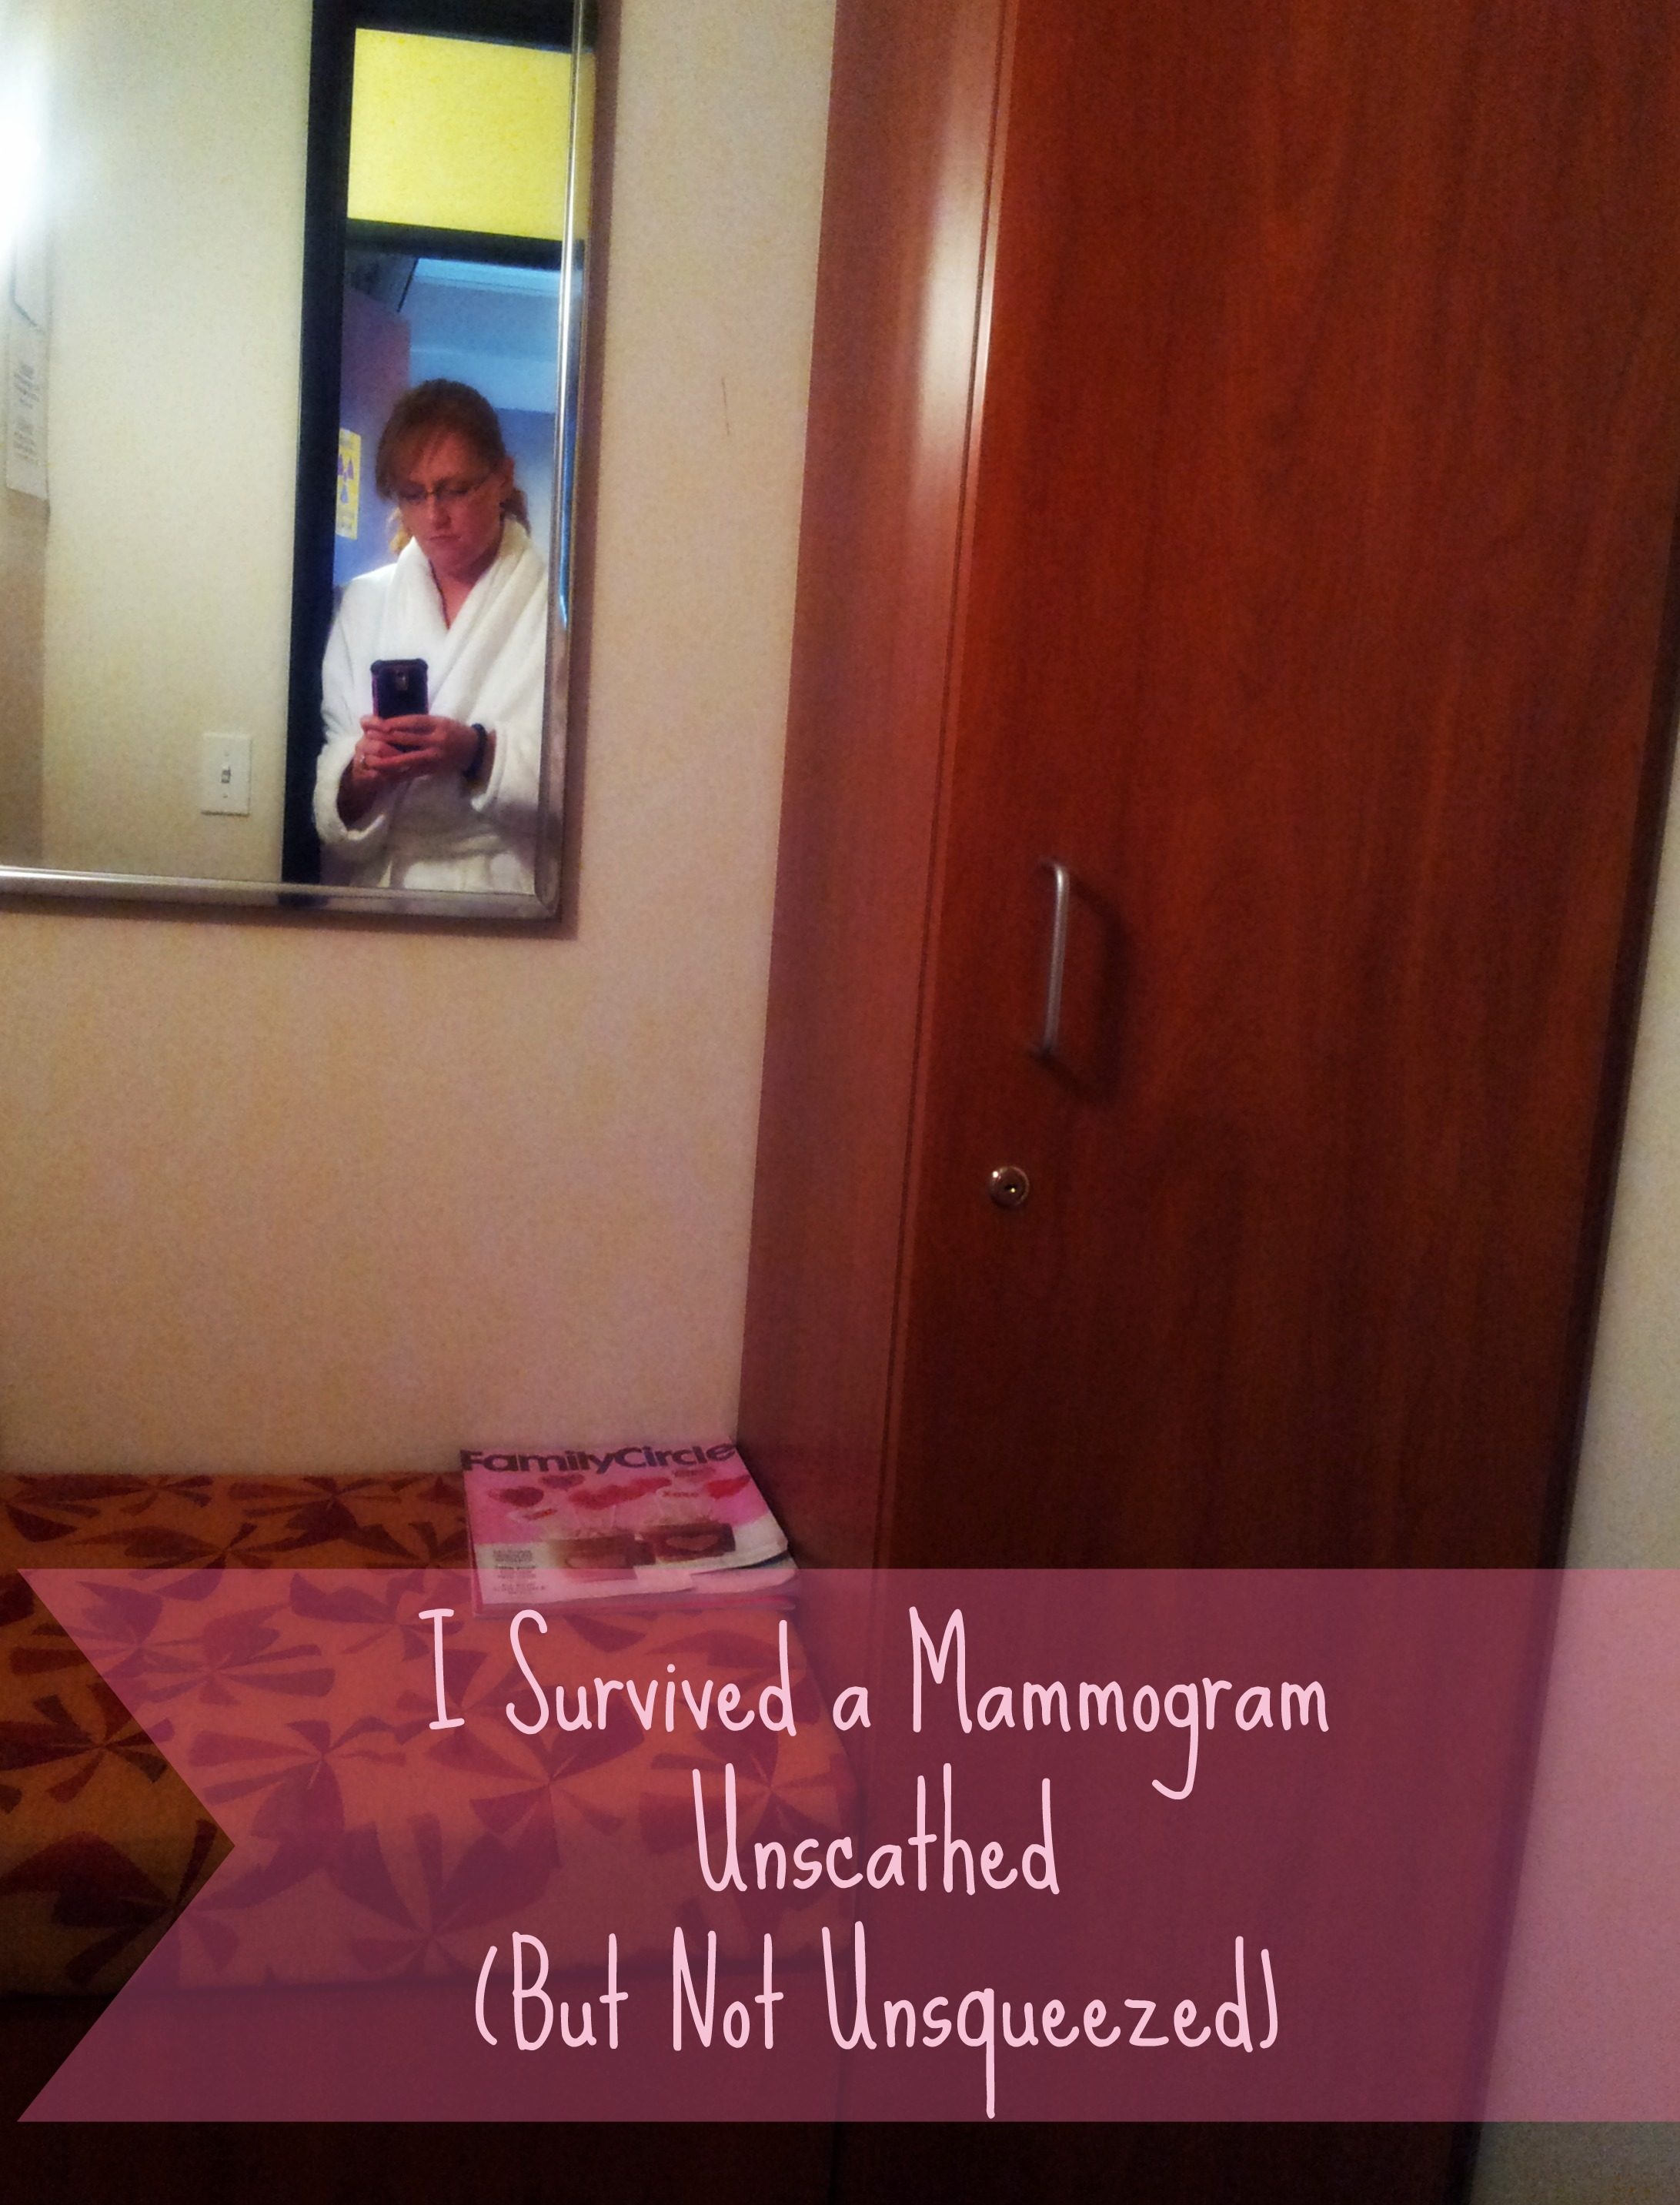 I Survived a Mammogram Unscathed (But Not Unsqueezed) #YearTil40